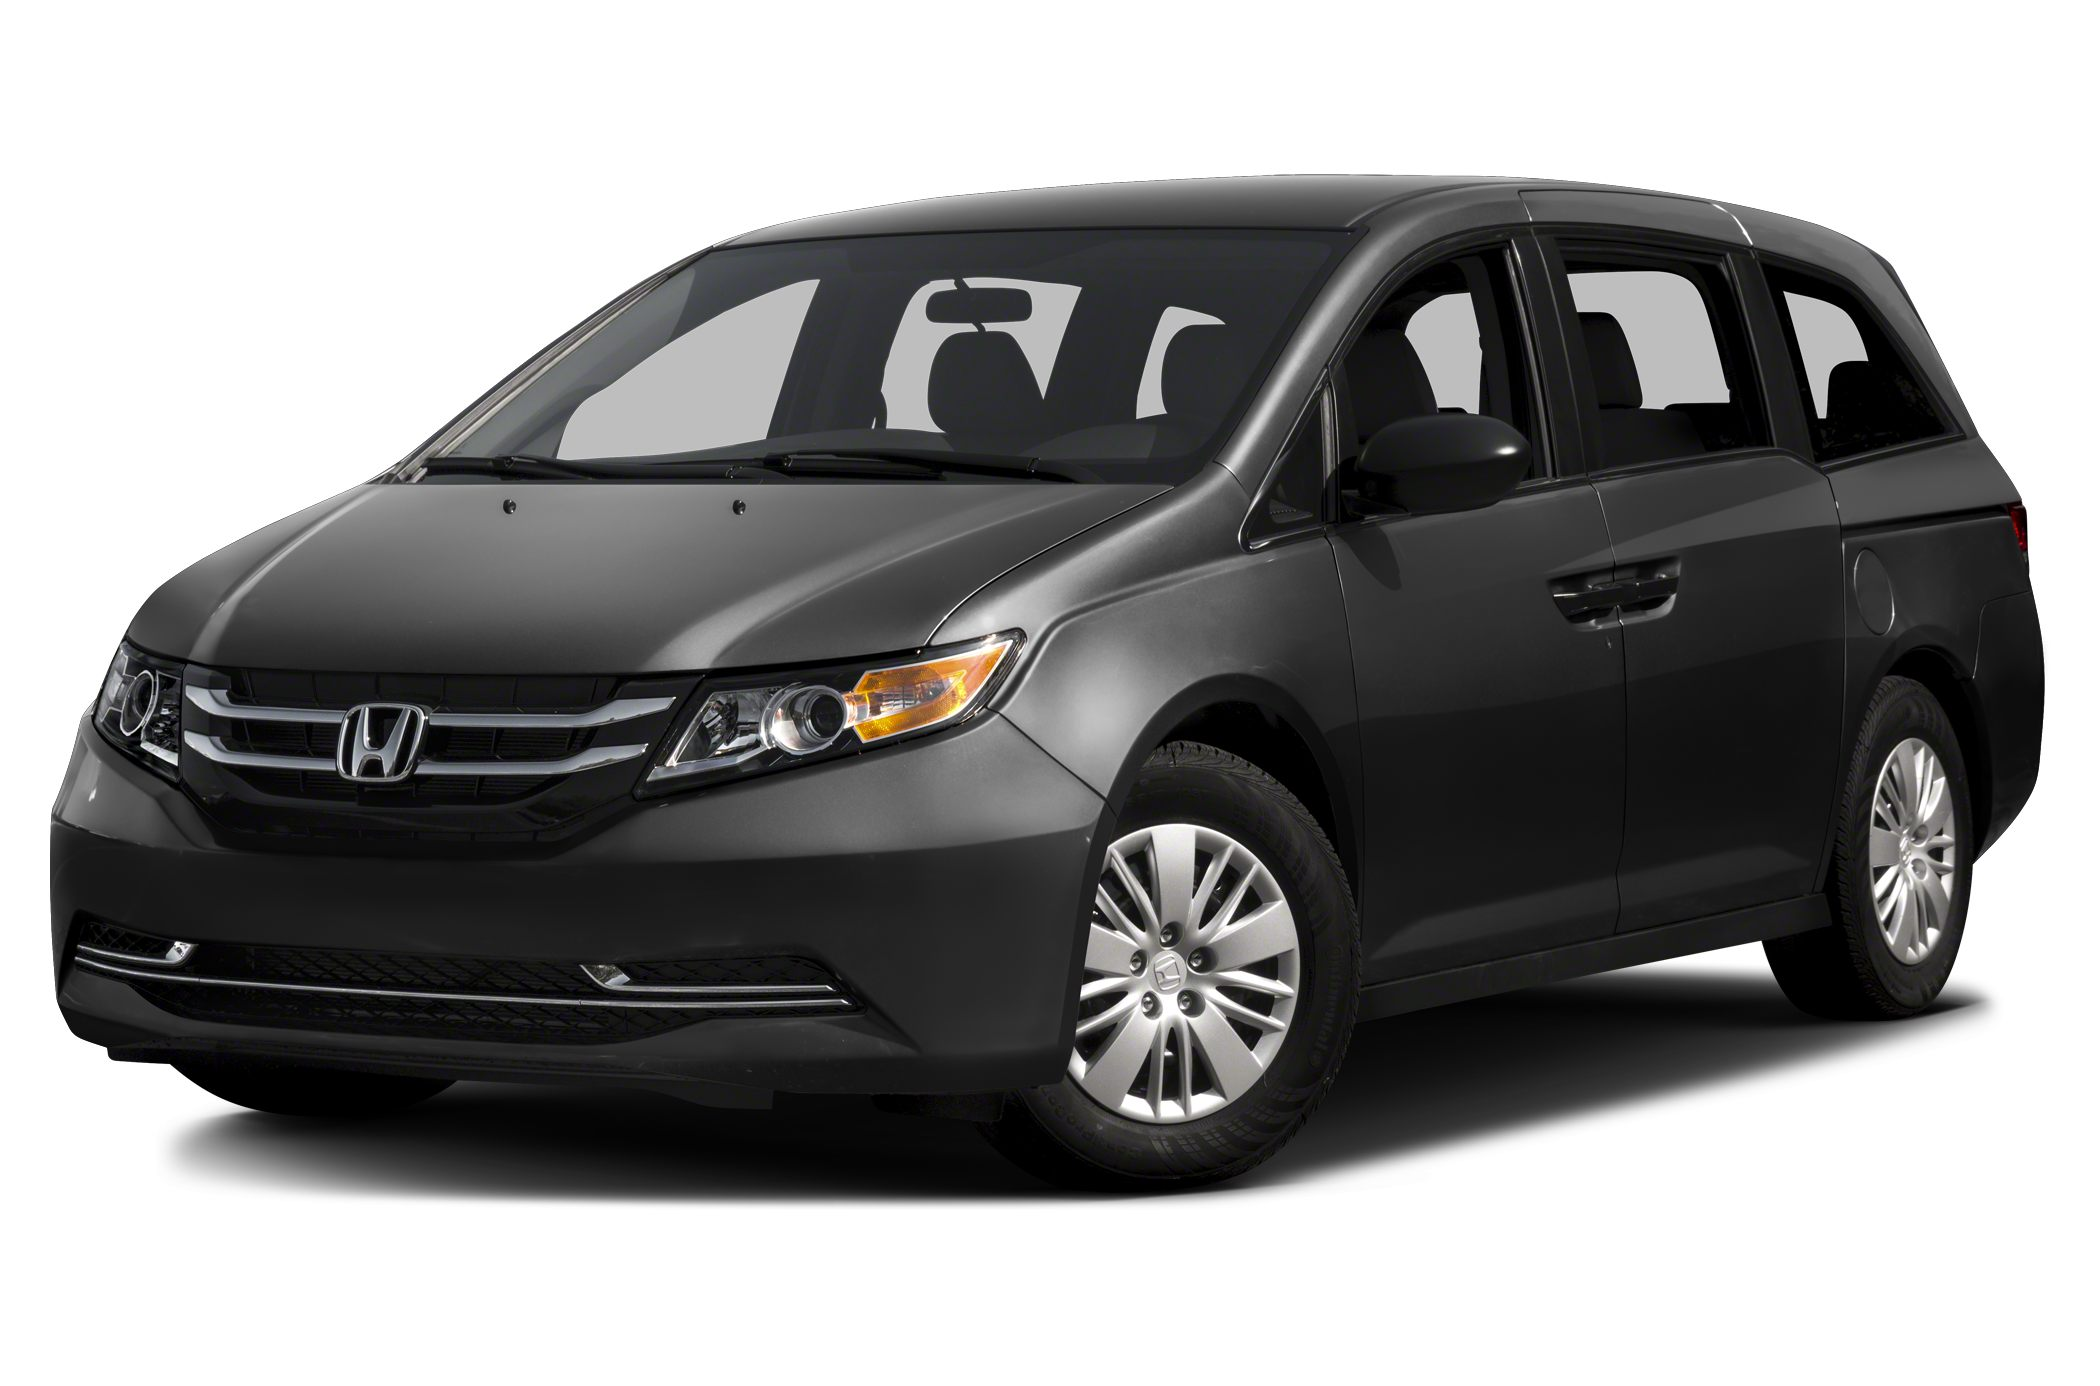 2016 Honda Odyssey LX Traction control keeps you from slip sliding away Has sticking power Buy a